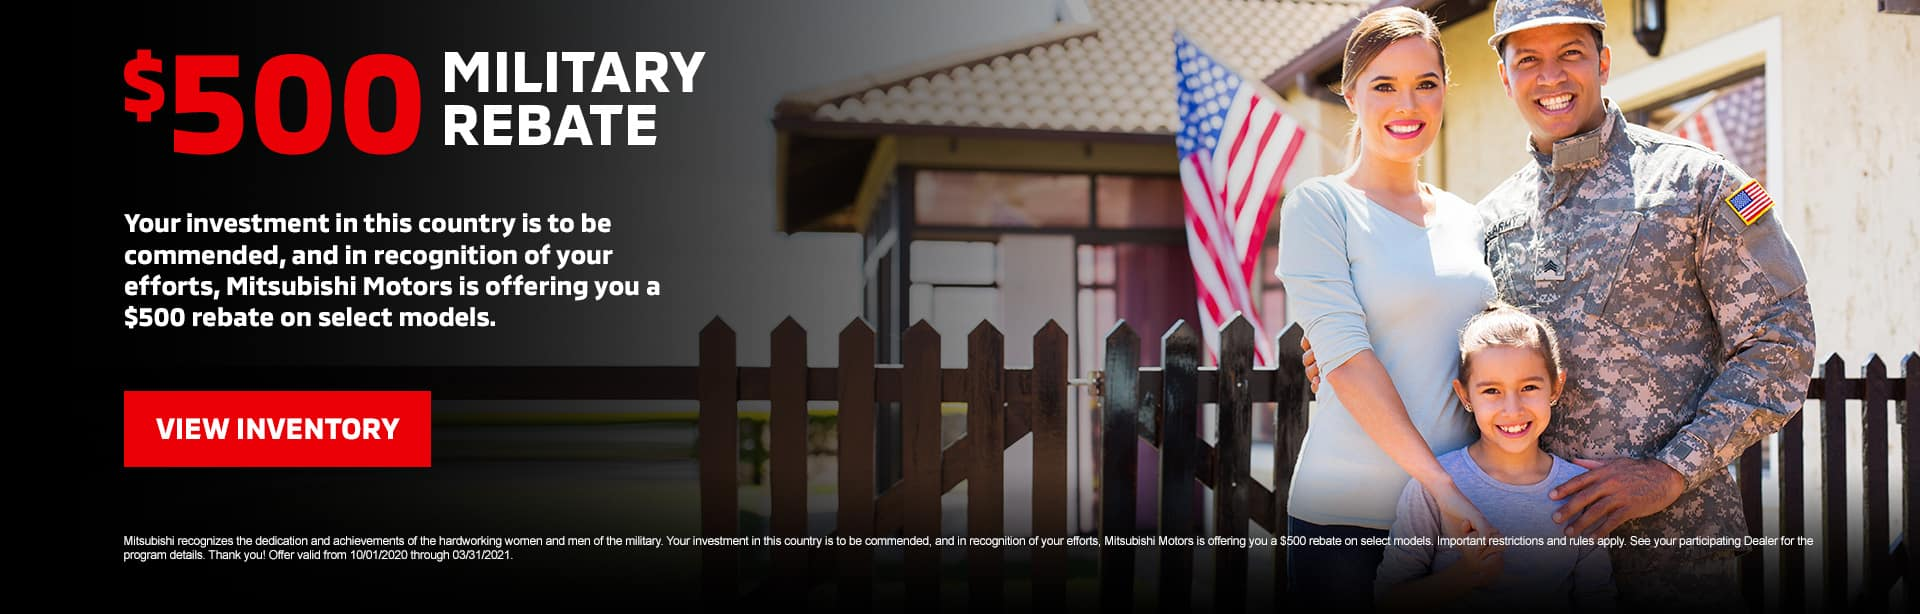 $500 Military Rebate: Your investment in this country is to be commended, and in recognition of your efforts, Mitsubishi Motors is offering you a $500 rebate on select models.